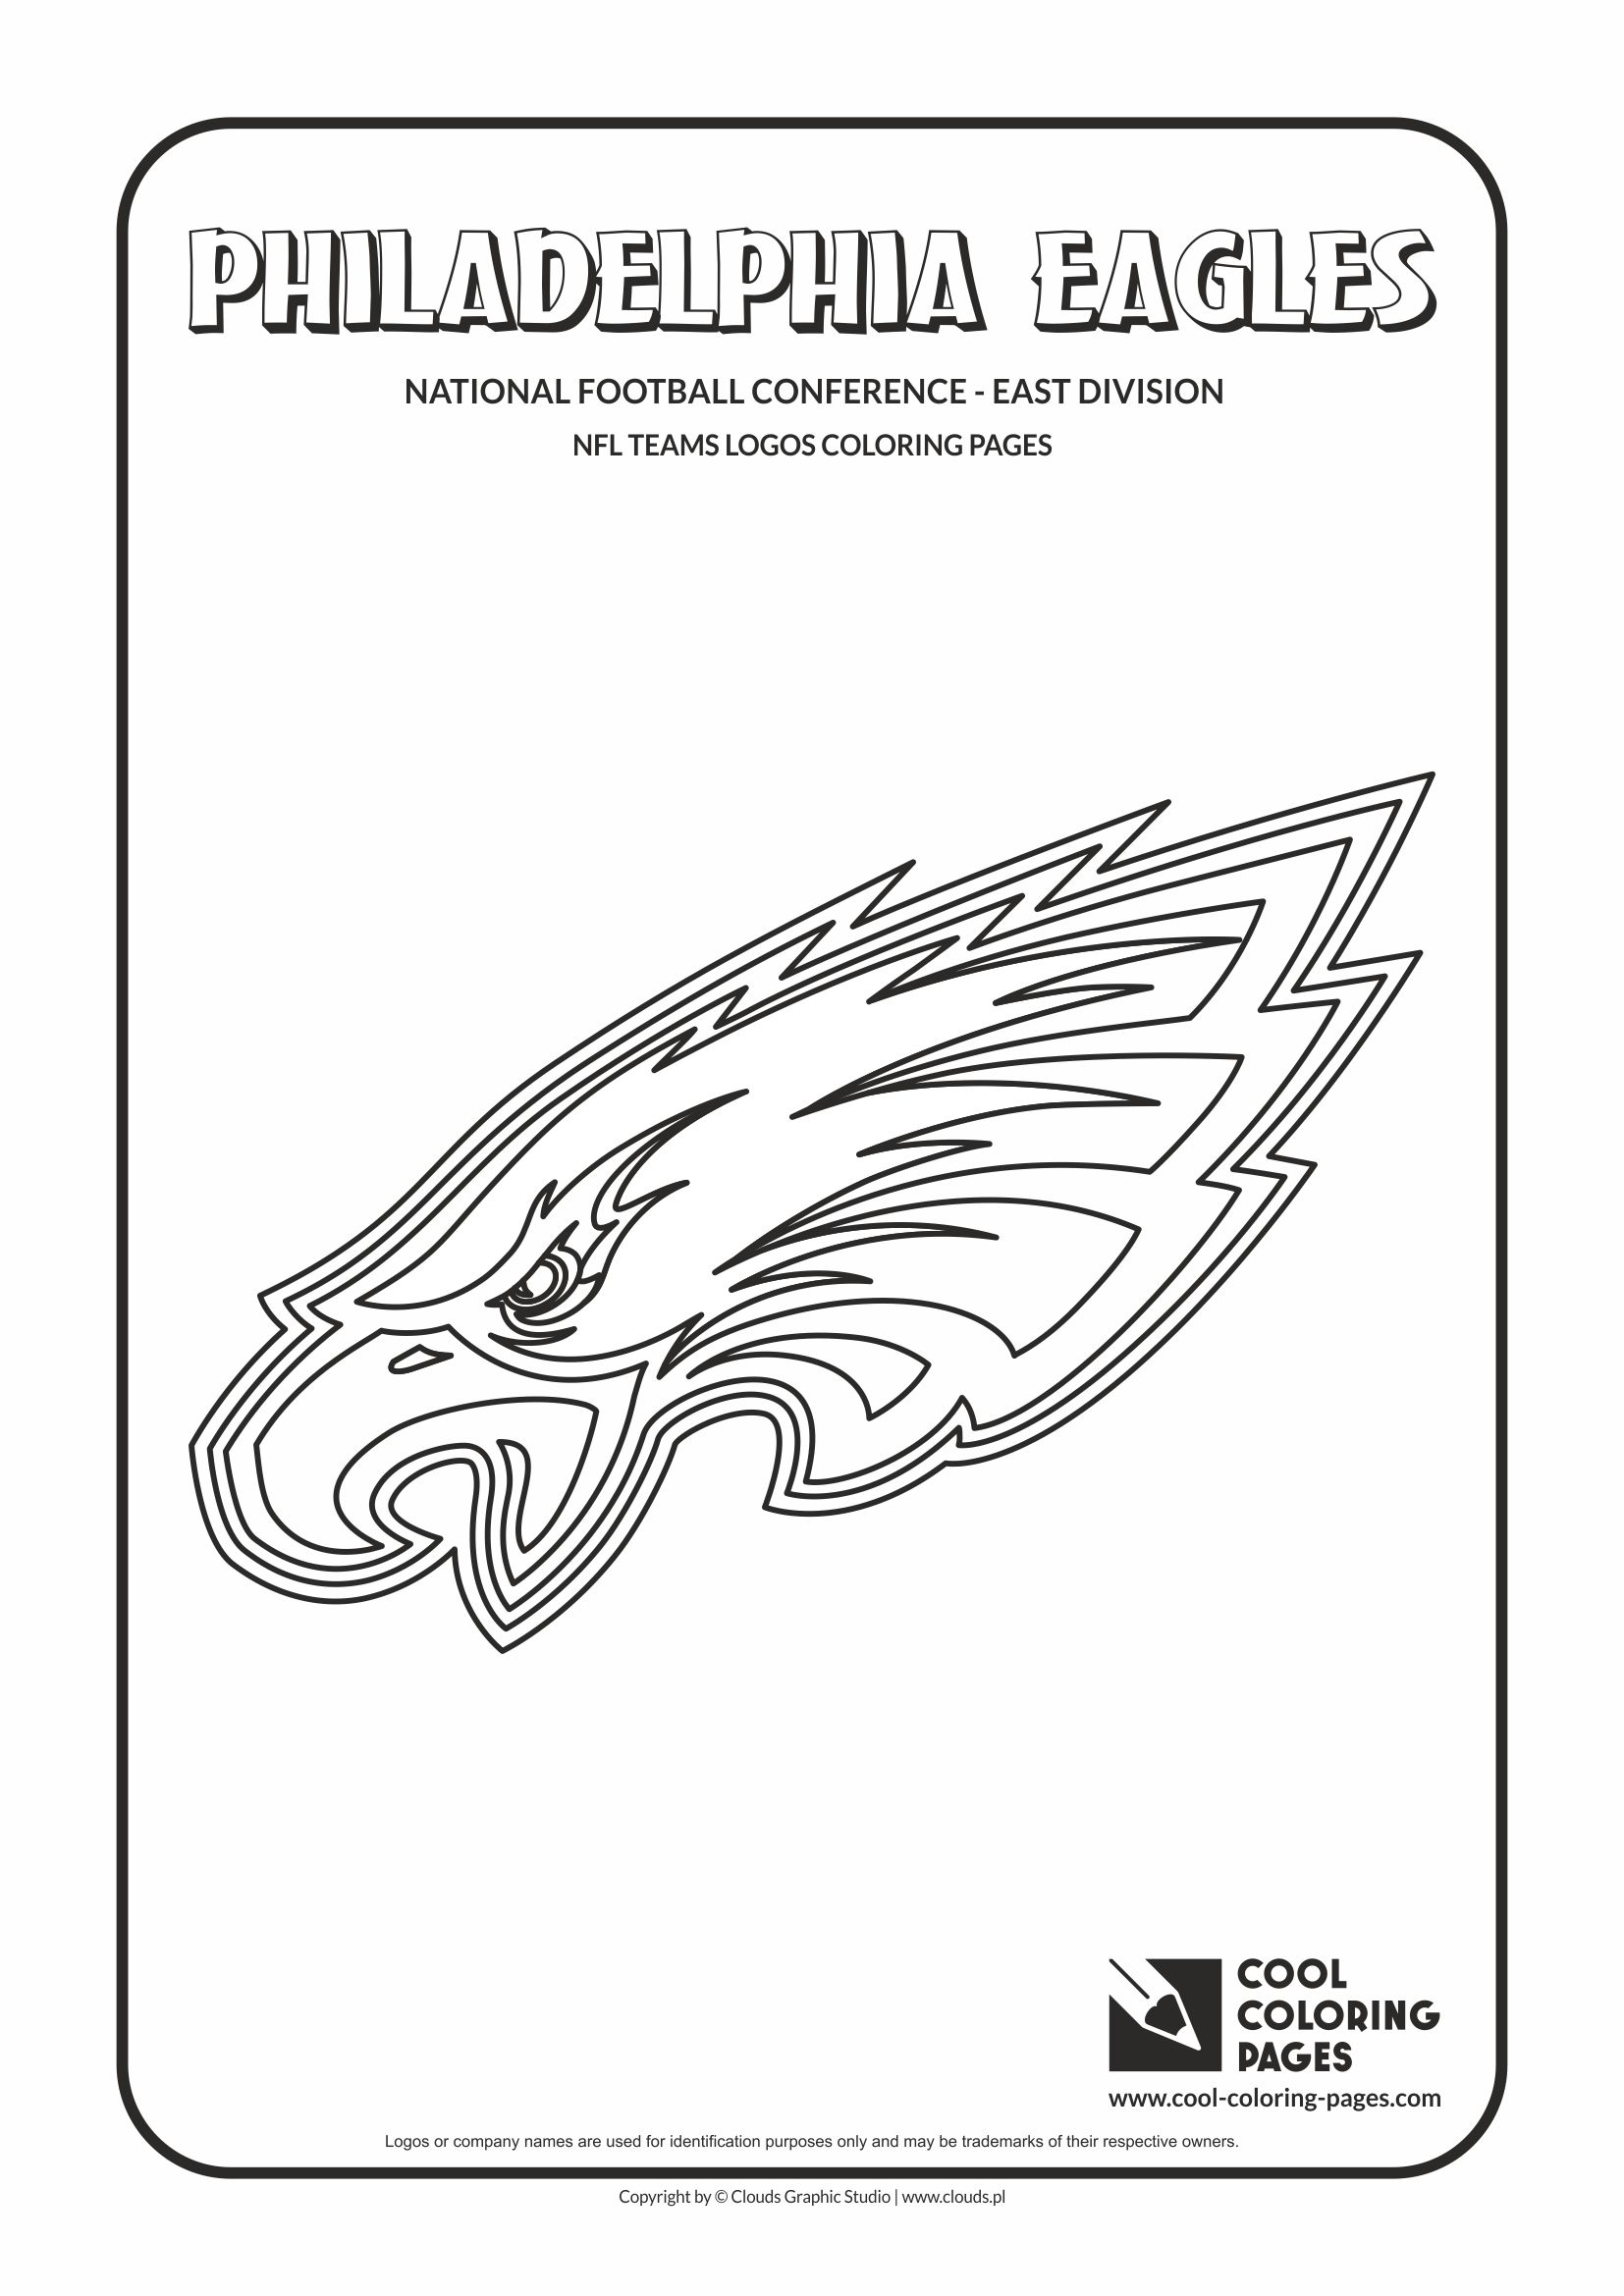 Cool Coloring Pages - NFL American Football Clubs Logos - National Football Conference - East Division / Philadelphia Eagles logo / Coloring page with Philadelphia Eagles logo